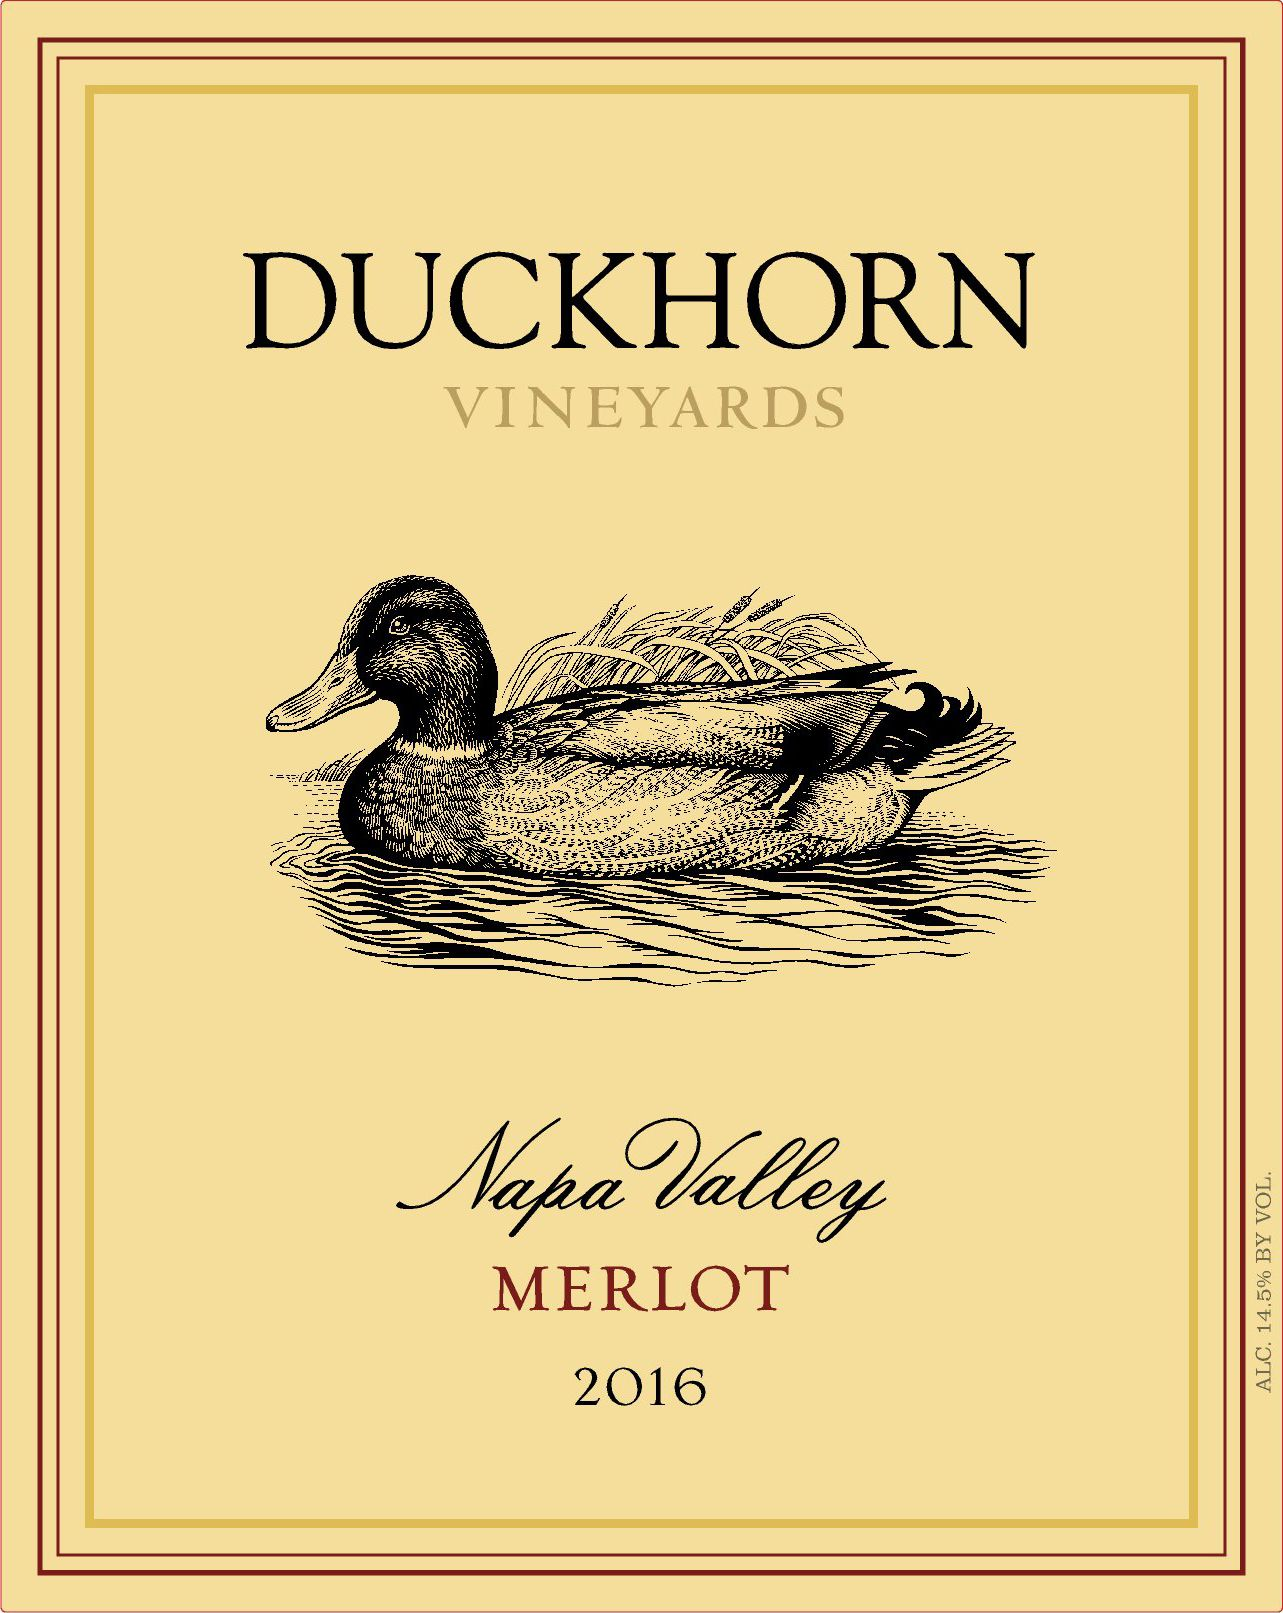 Duckhorn Napa Valley Merlot (3 Liter Bottle) 2016  Front Label